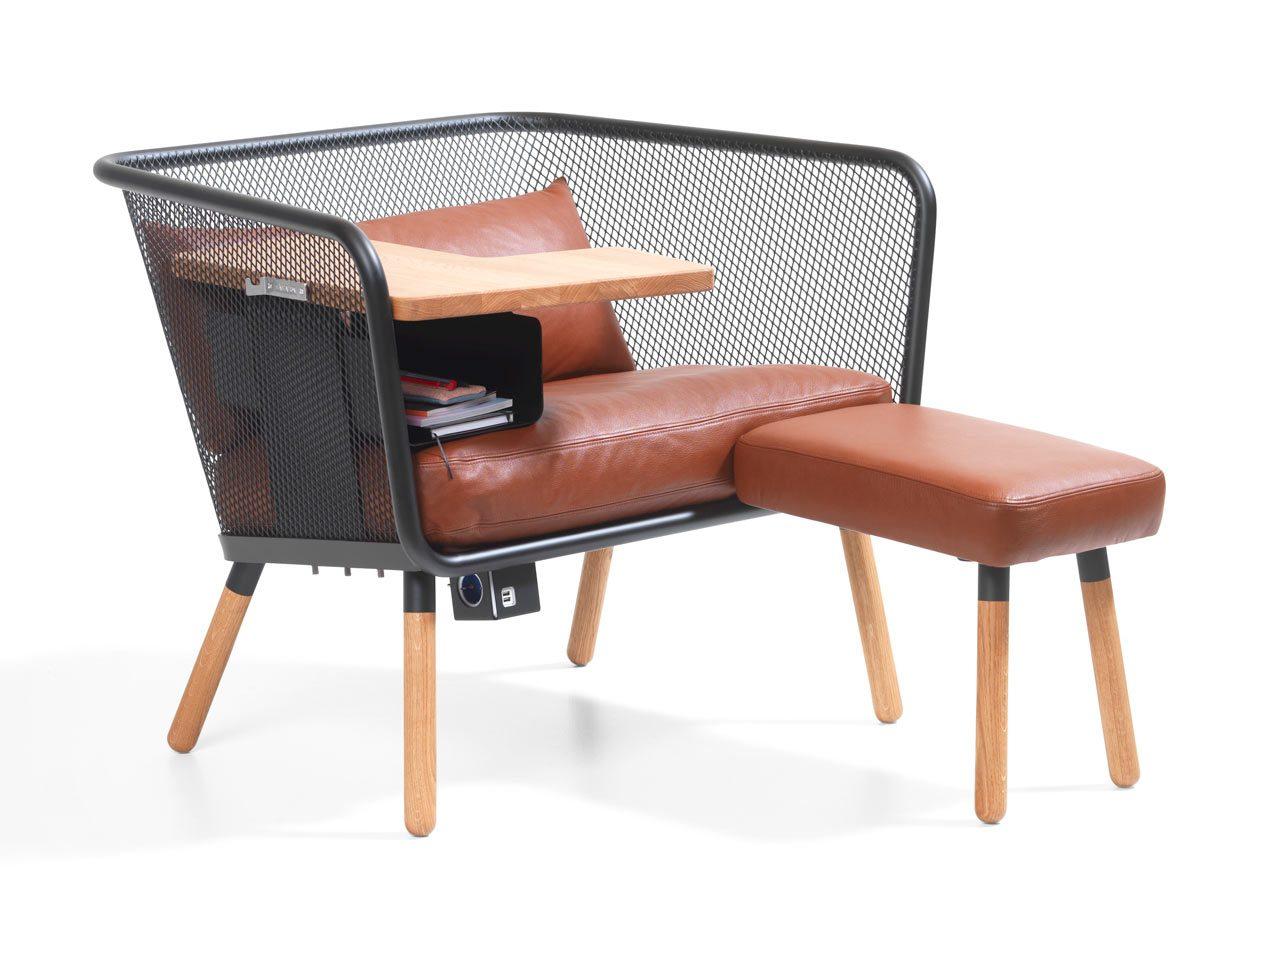 Honken-Workstation-Bla-Station-Bernstrand-Lindau-Borselius-design-chair-ottoman